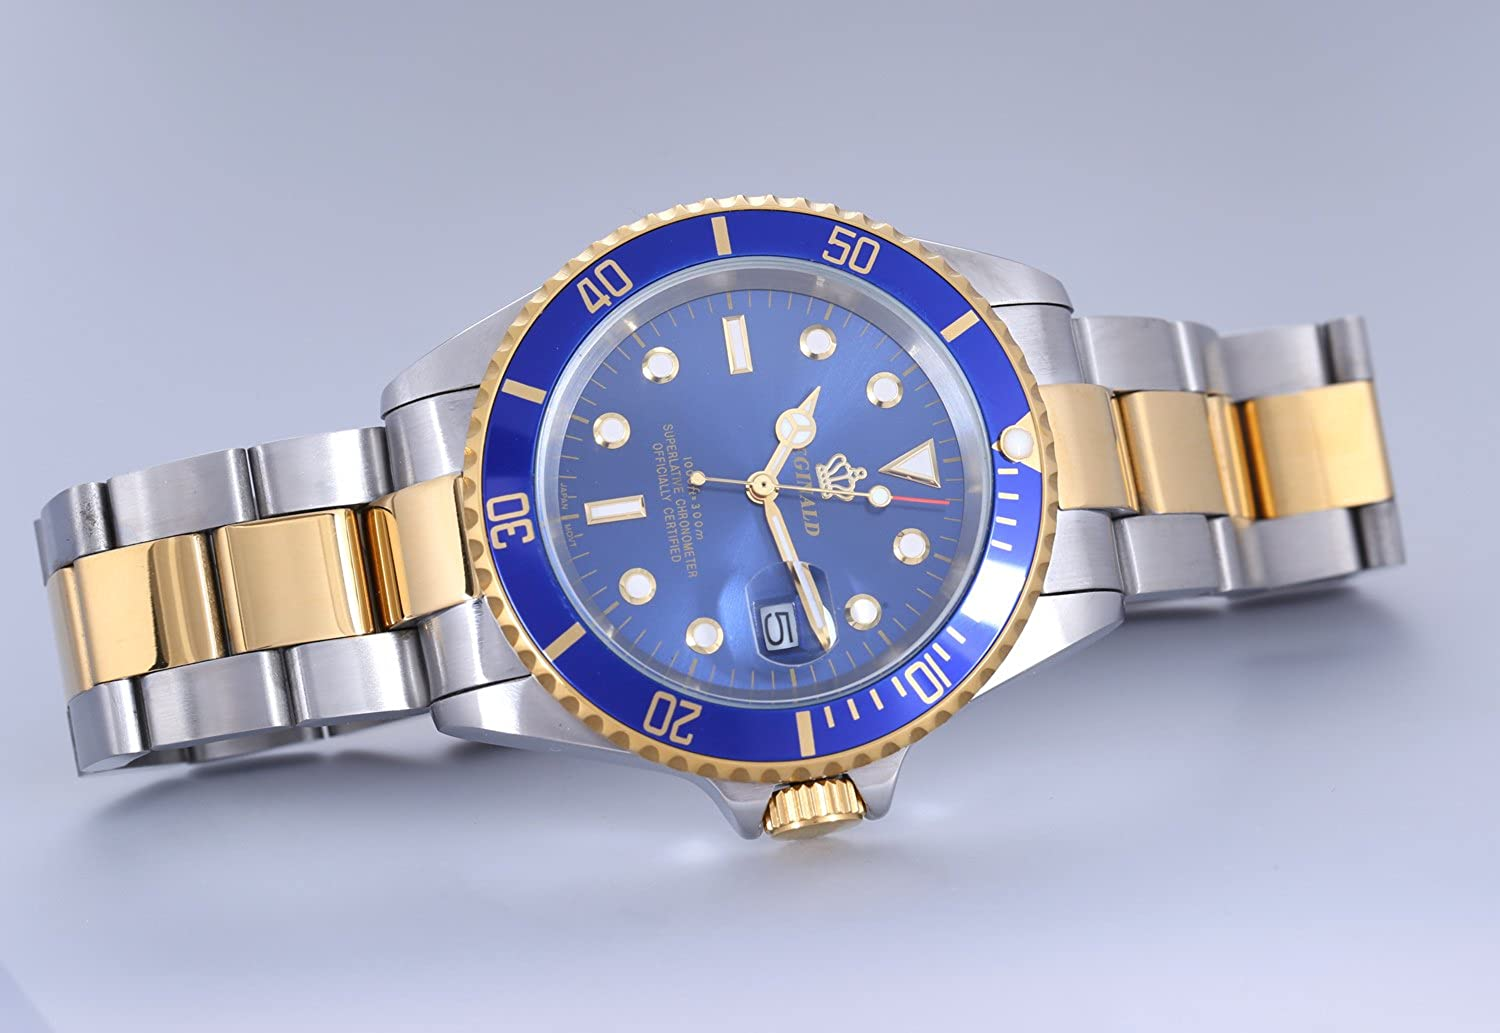 Amazon.com: REGINALD Mens Luminous Watch Rotatable Bezel Sapphire Glass Blue Dial Gold Stainless Steel Quartz Watches: Watches